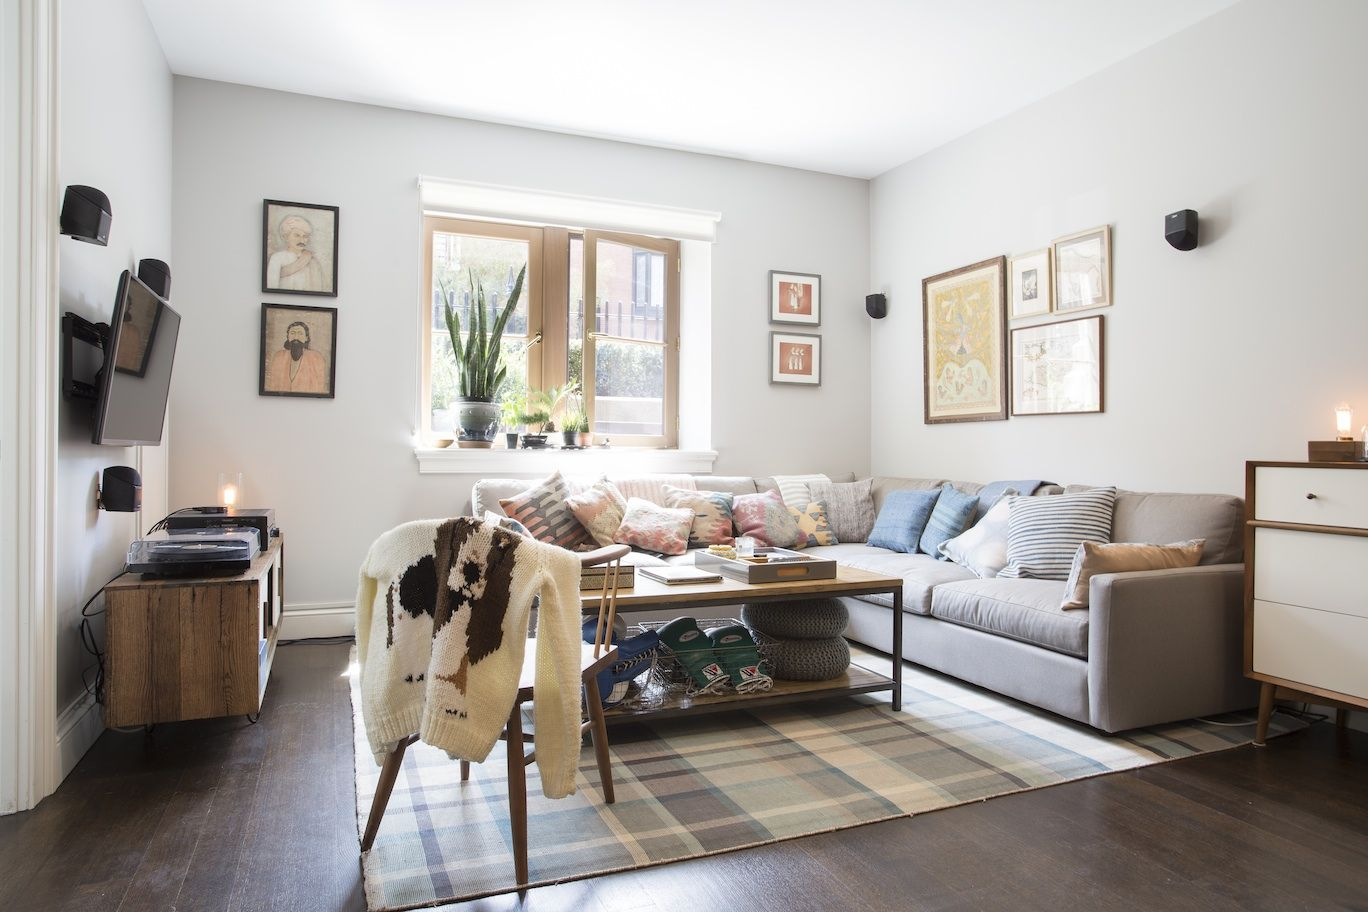 Home Makeover - Tour an Apartment Inspired By a Dog